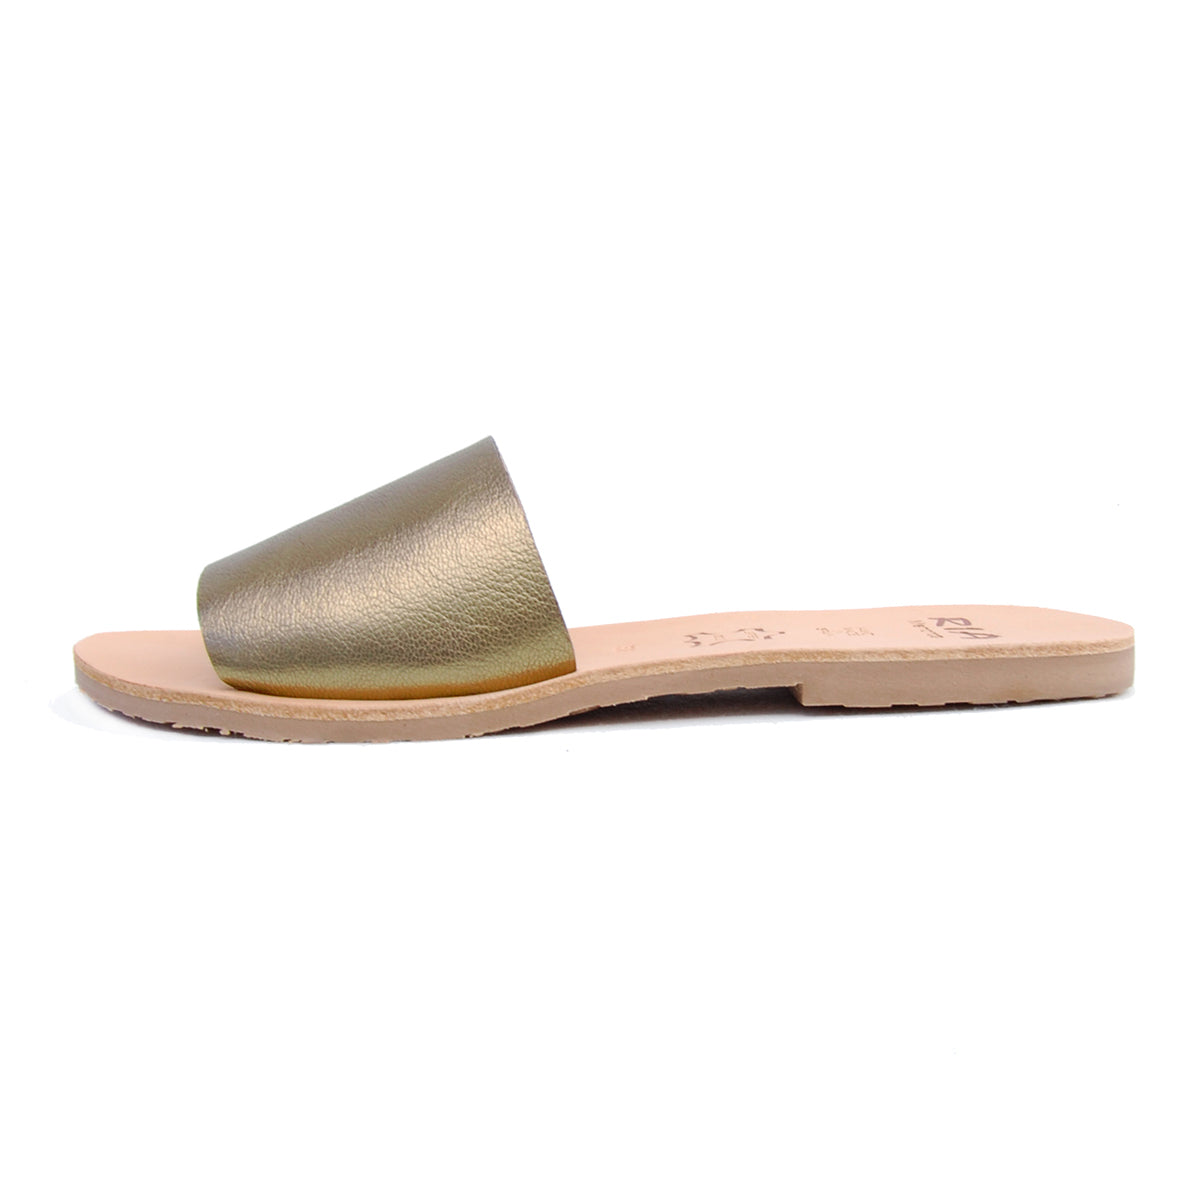 Llux Spanish Slides in Metallic Bronze